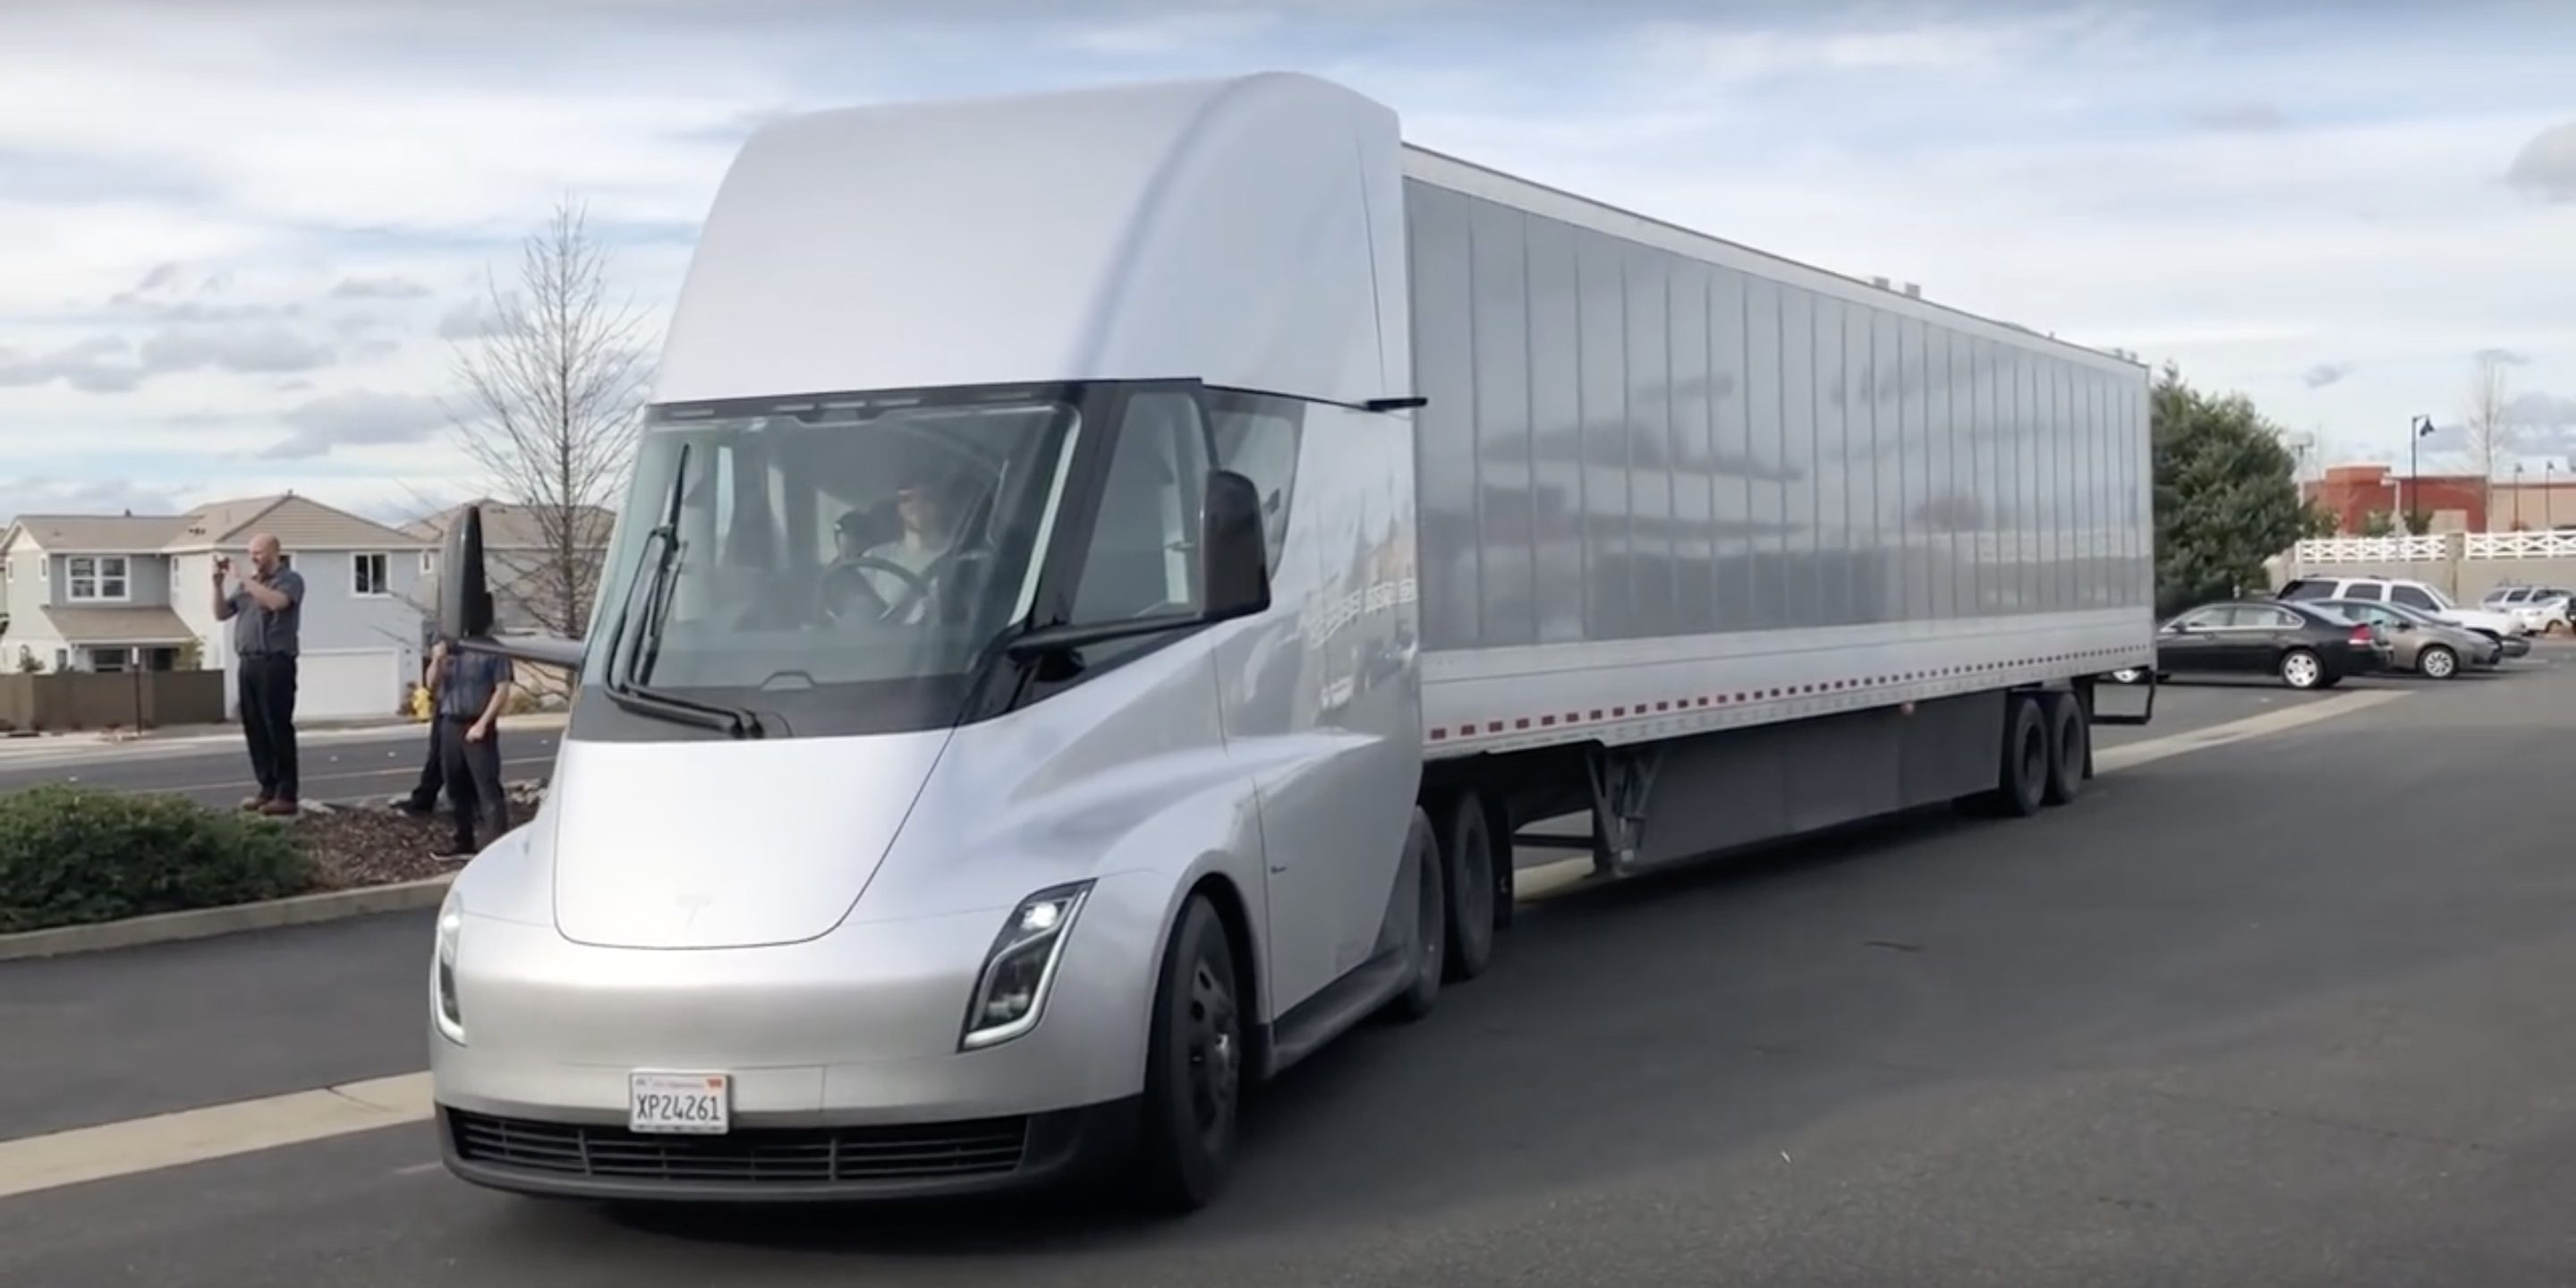 Tesla Semi trucks, Powerpacks, and solar to be used in new near zero-emission Frito-Lay facility